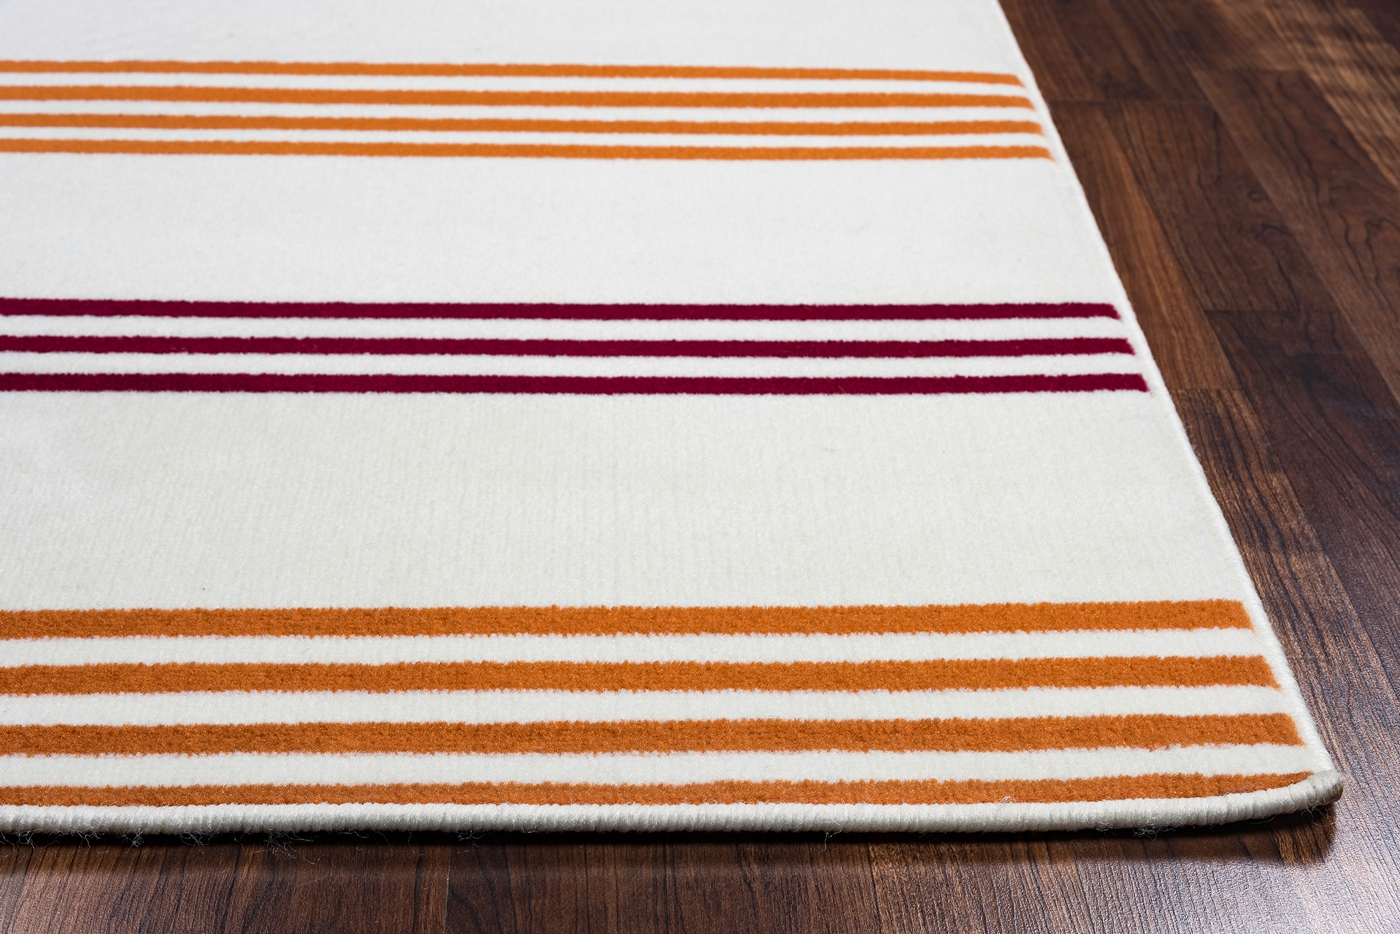 Glendale minamalist stripes area rug in off white red for Red and white striped area rug